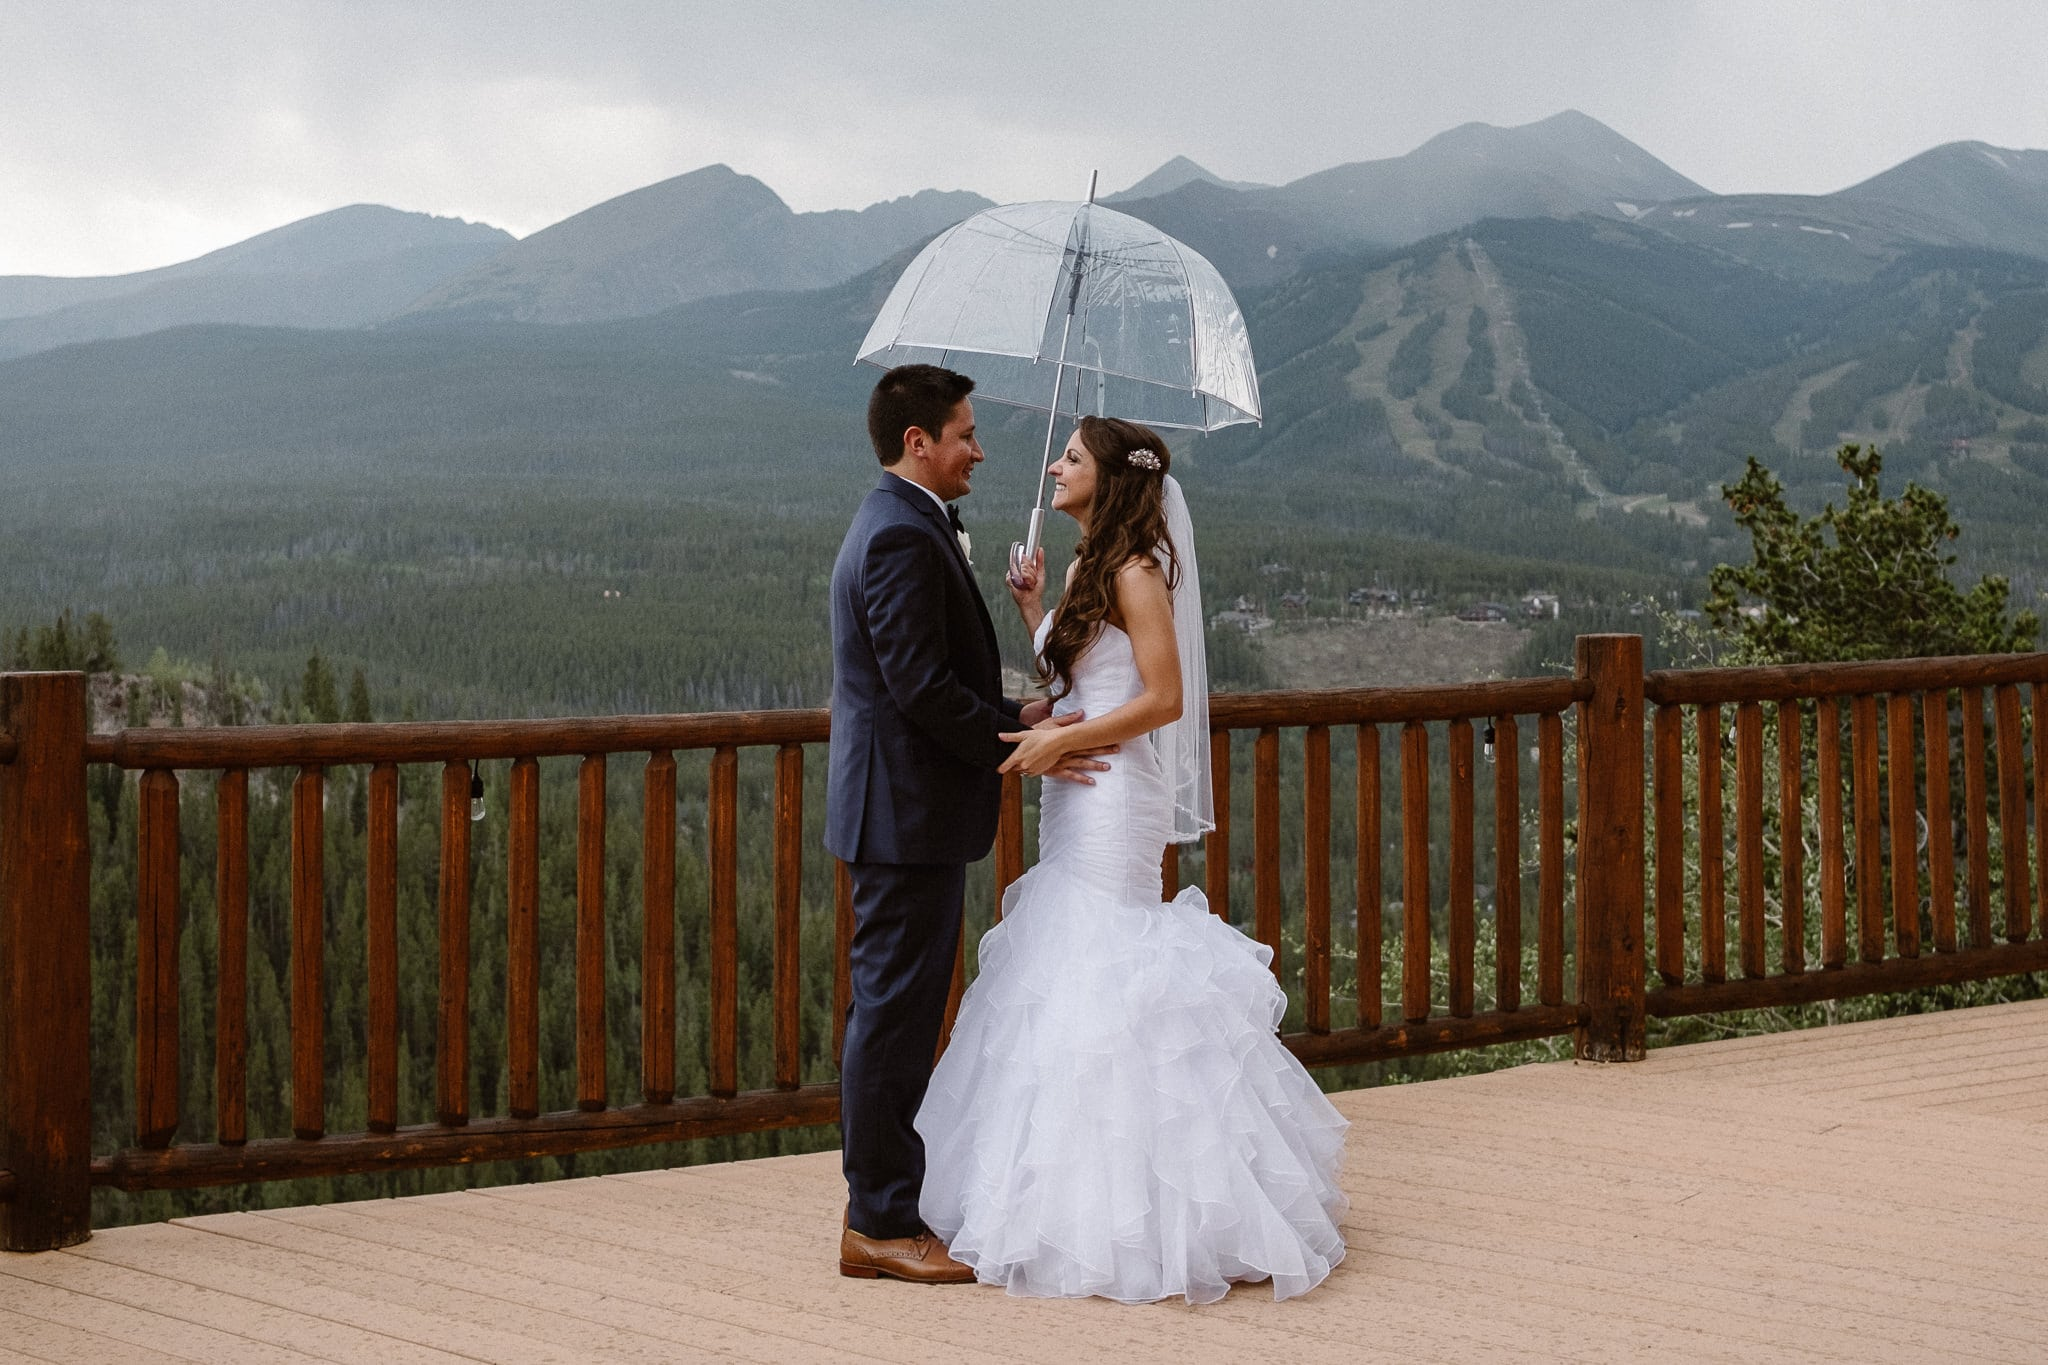 Lodge at Breckenridge Wedding Photographer, Colorado mountain wedding photographer, bride and groom portraits in rain with clear umbrella